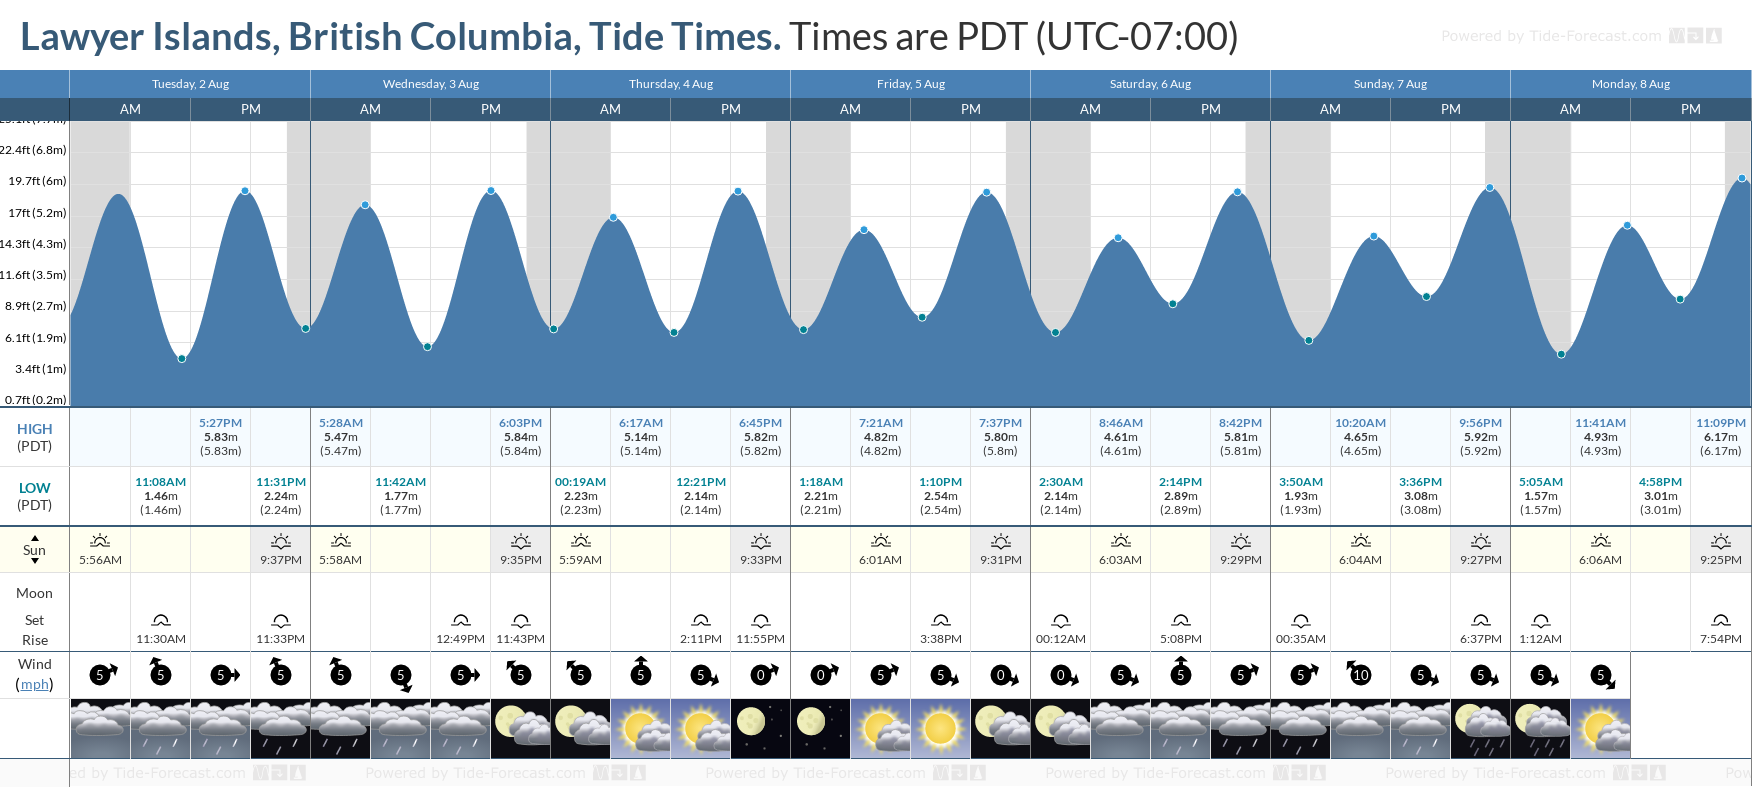 Lawyer Islands, British Columbia Tide Chart including high and low tide tide times for the next 7 days